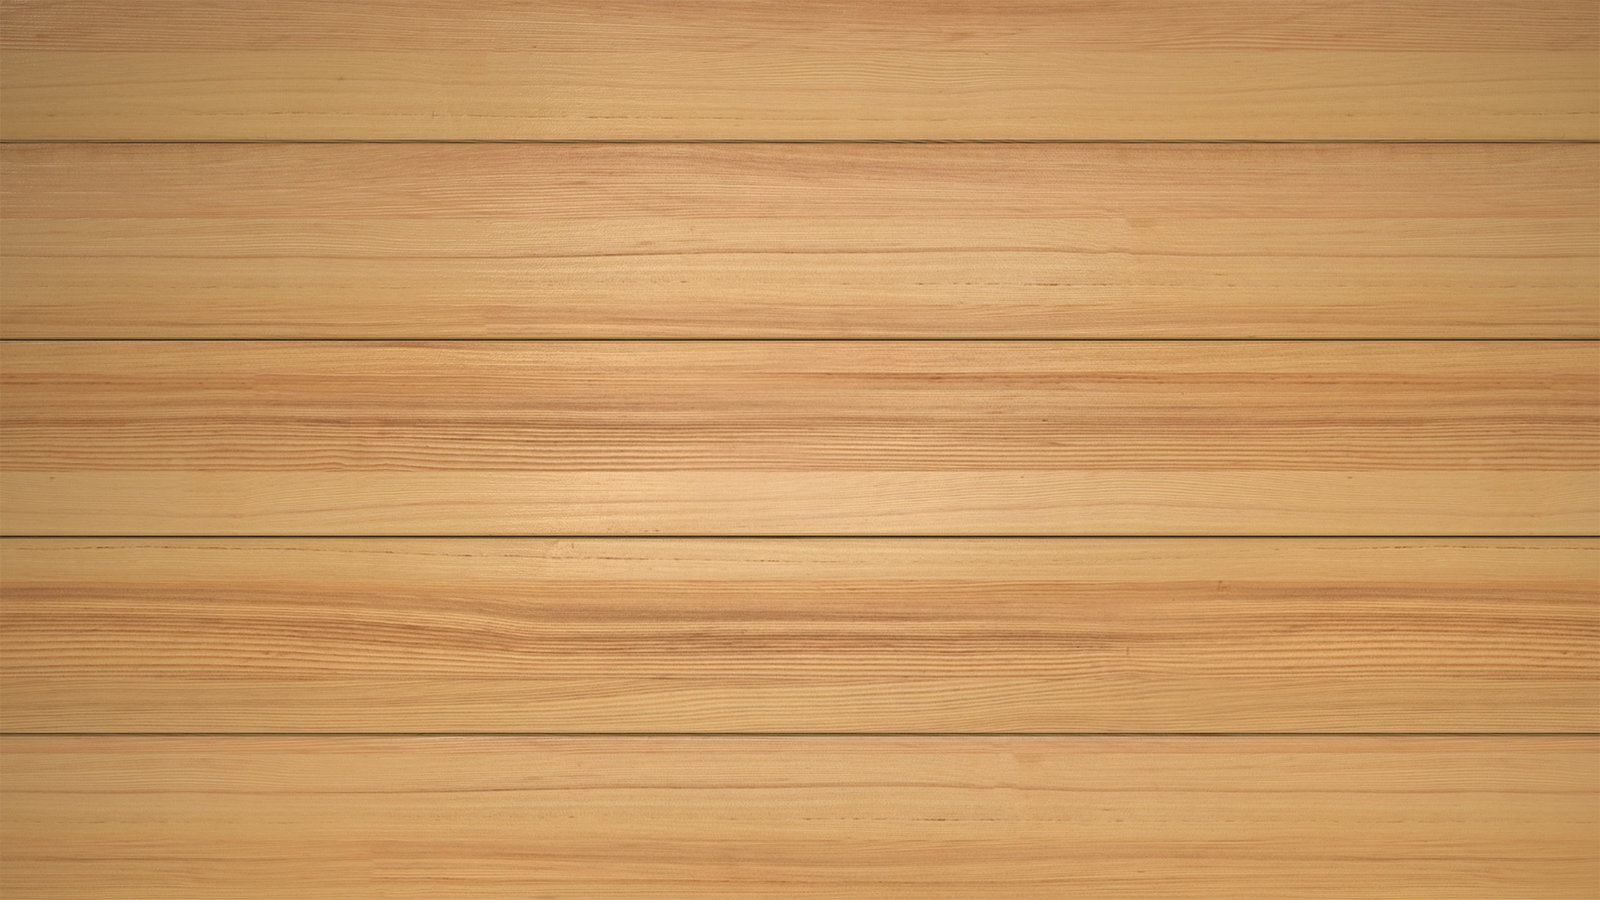 wooden backgrou coloring pages - HD1600×900